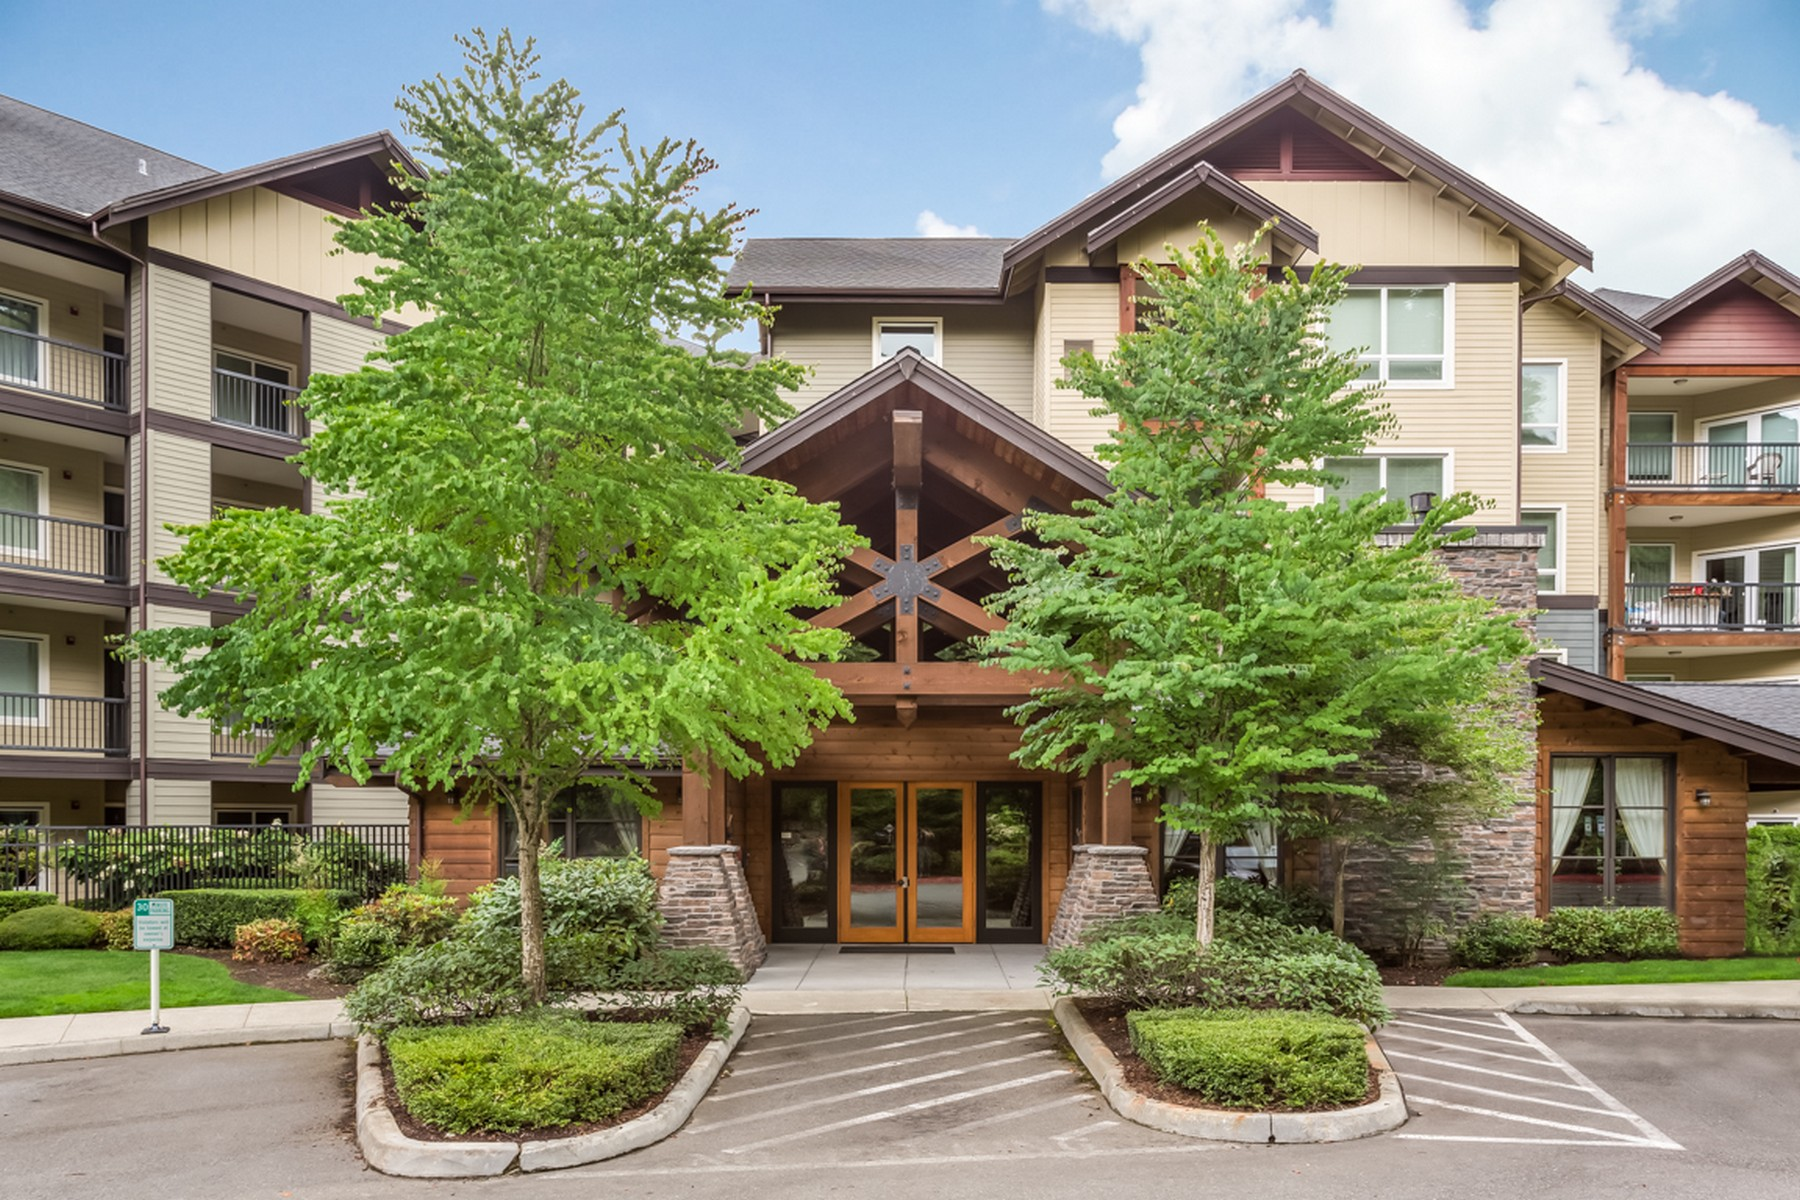 open-houses property at Monohan #401